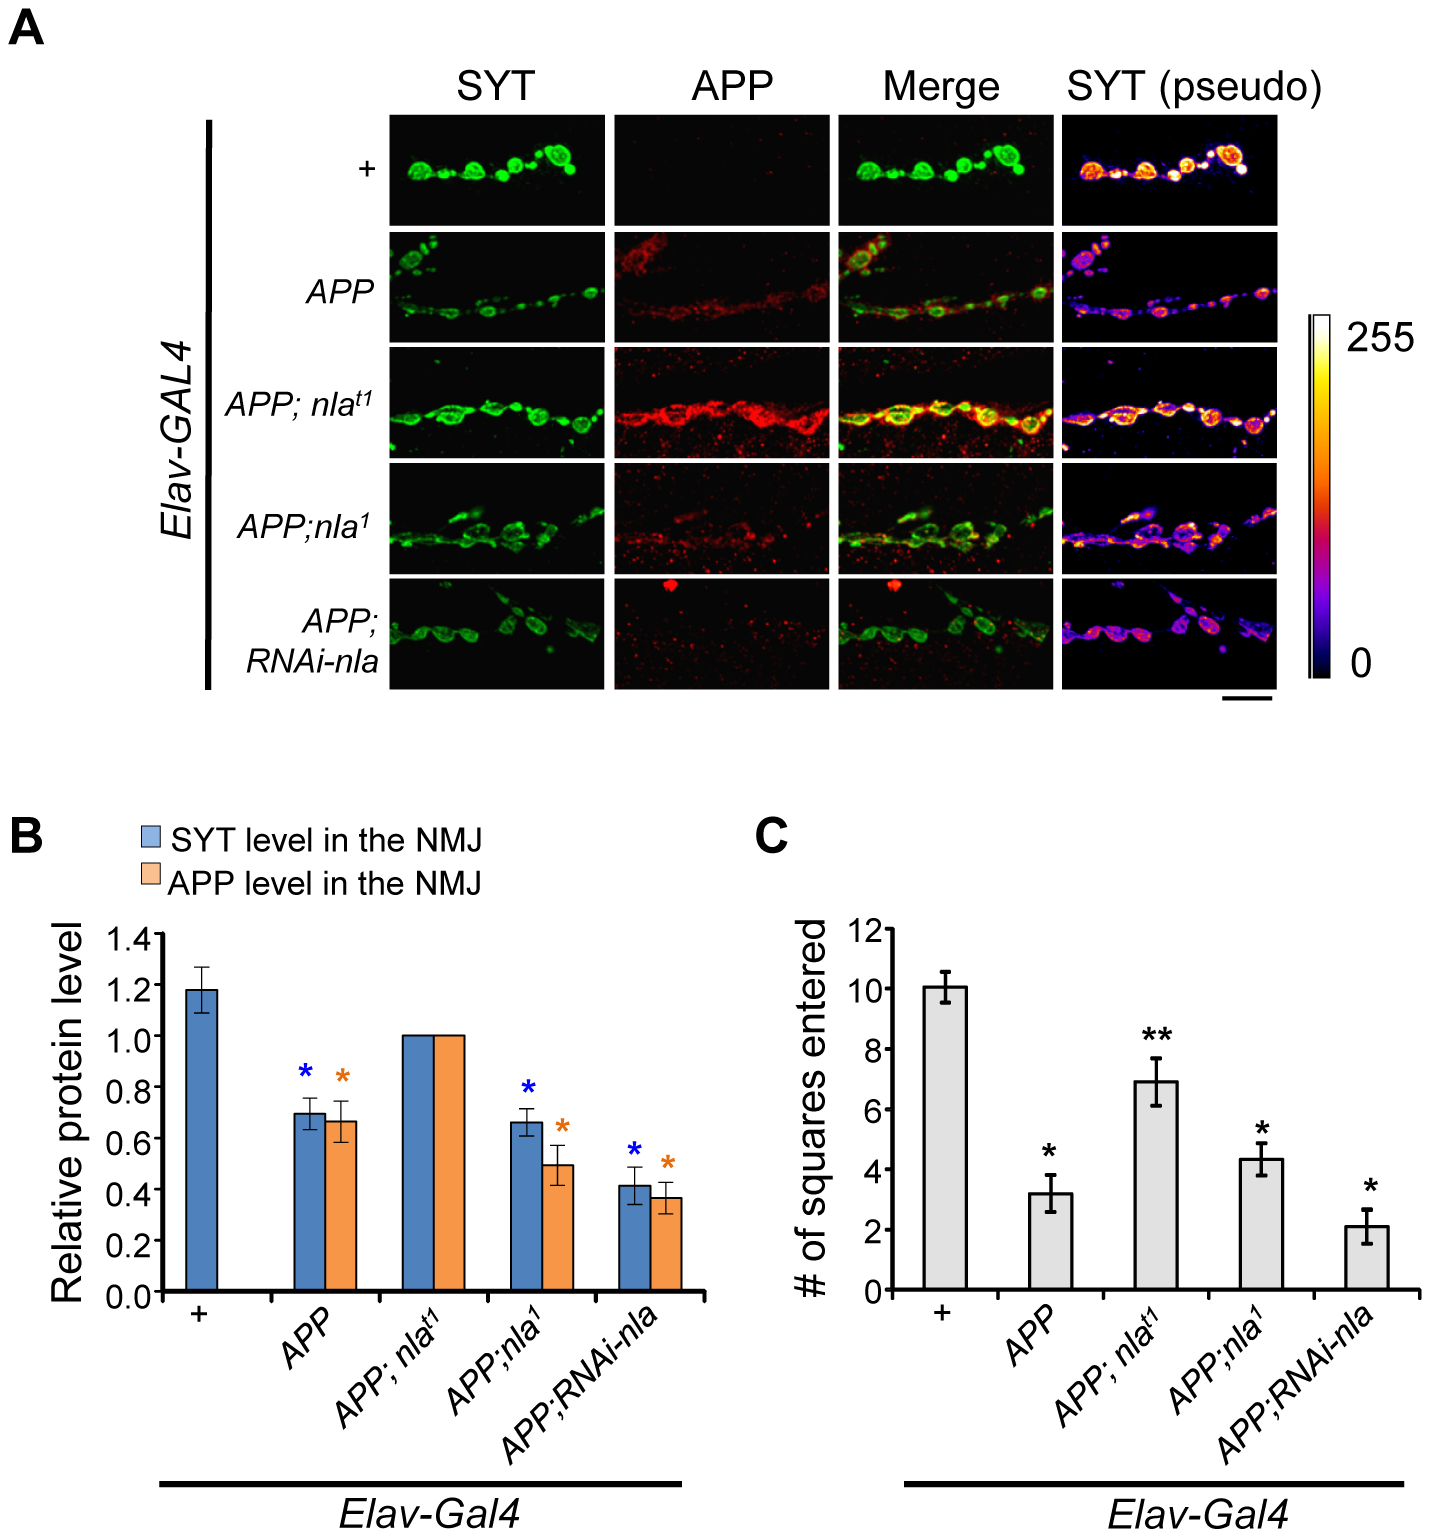 Nebula overexpression restores synaptotagmin level and enhances APP delivery to the synaptic terminals.